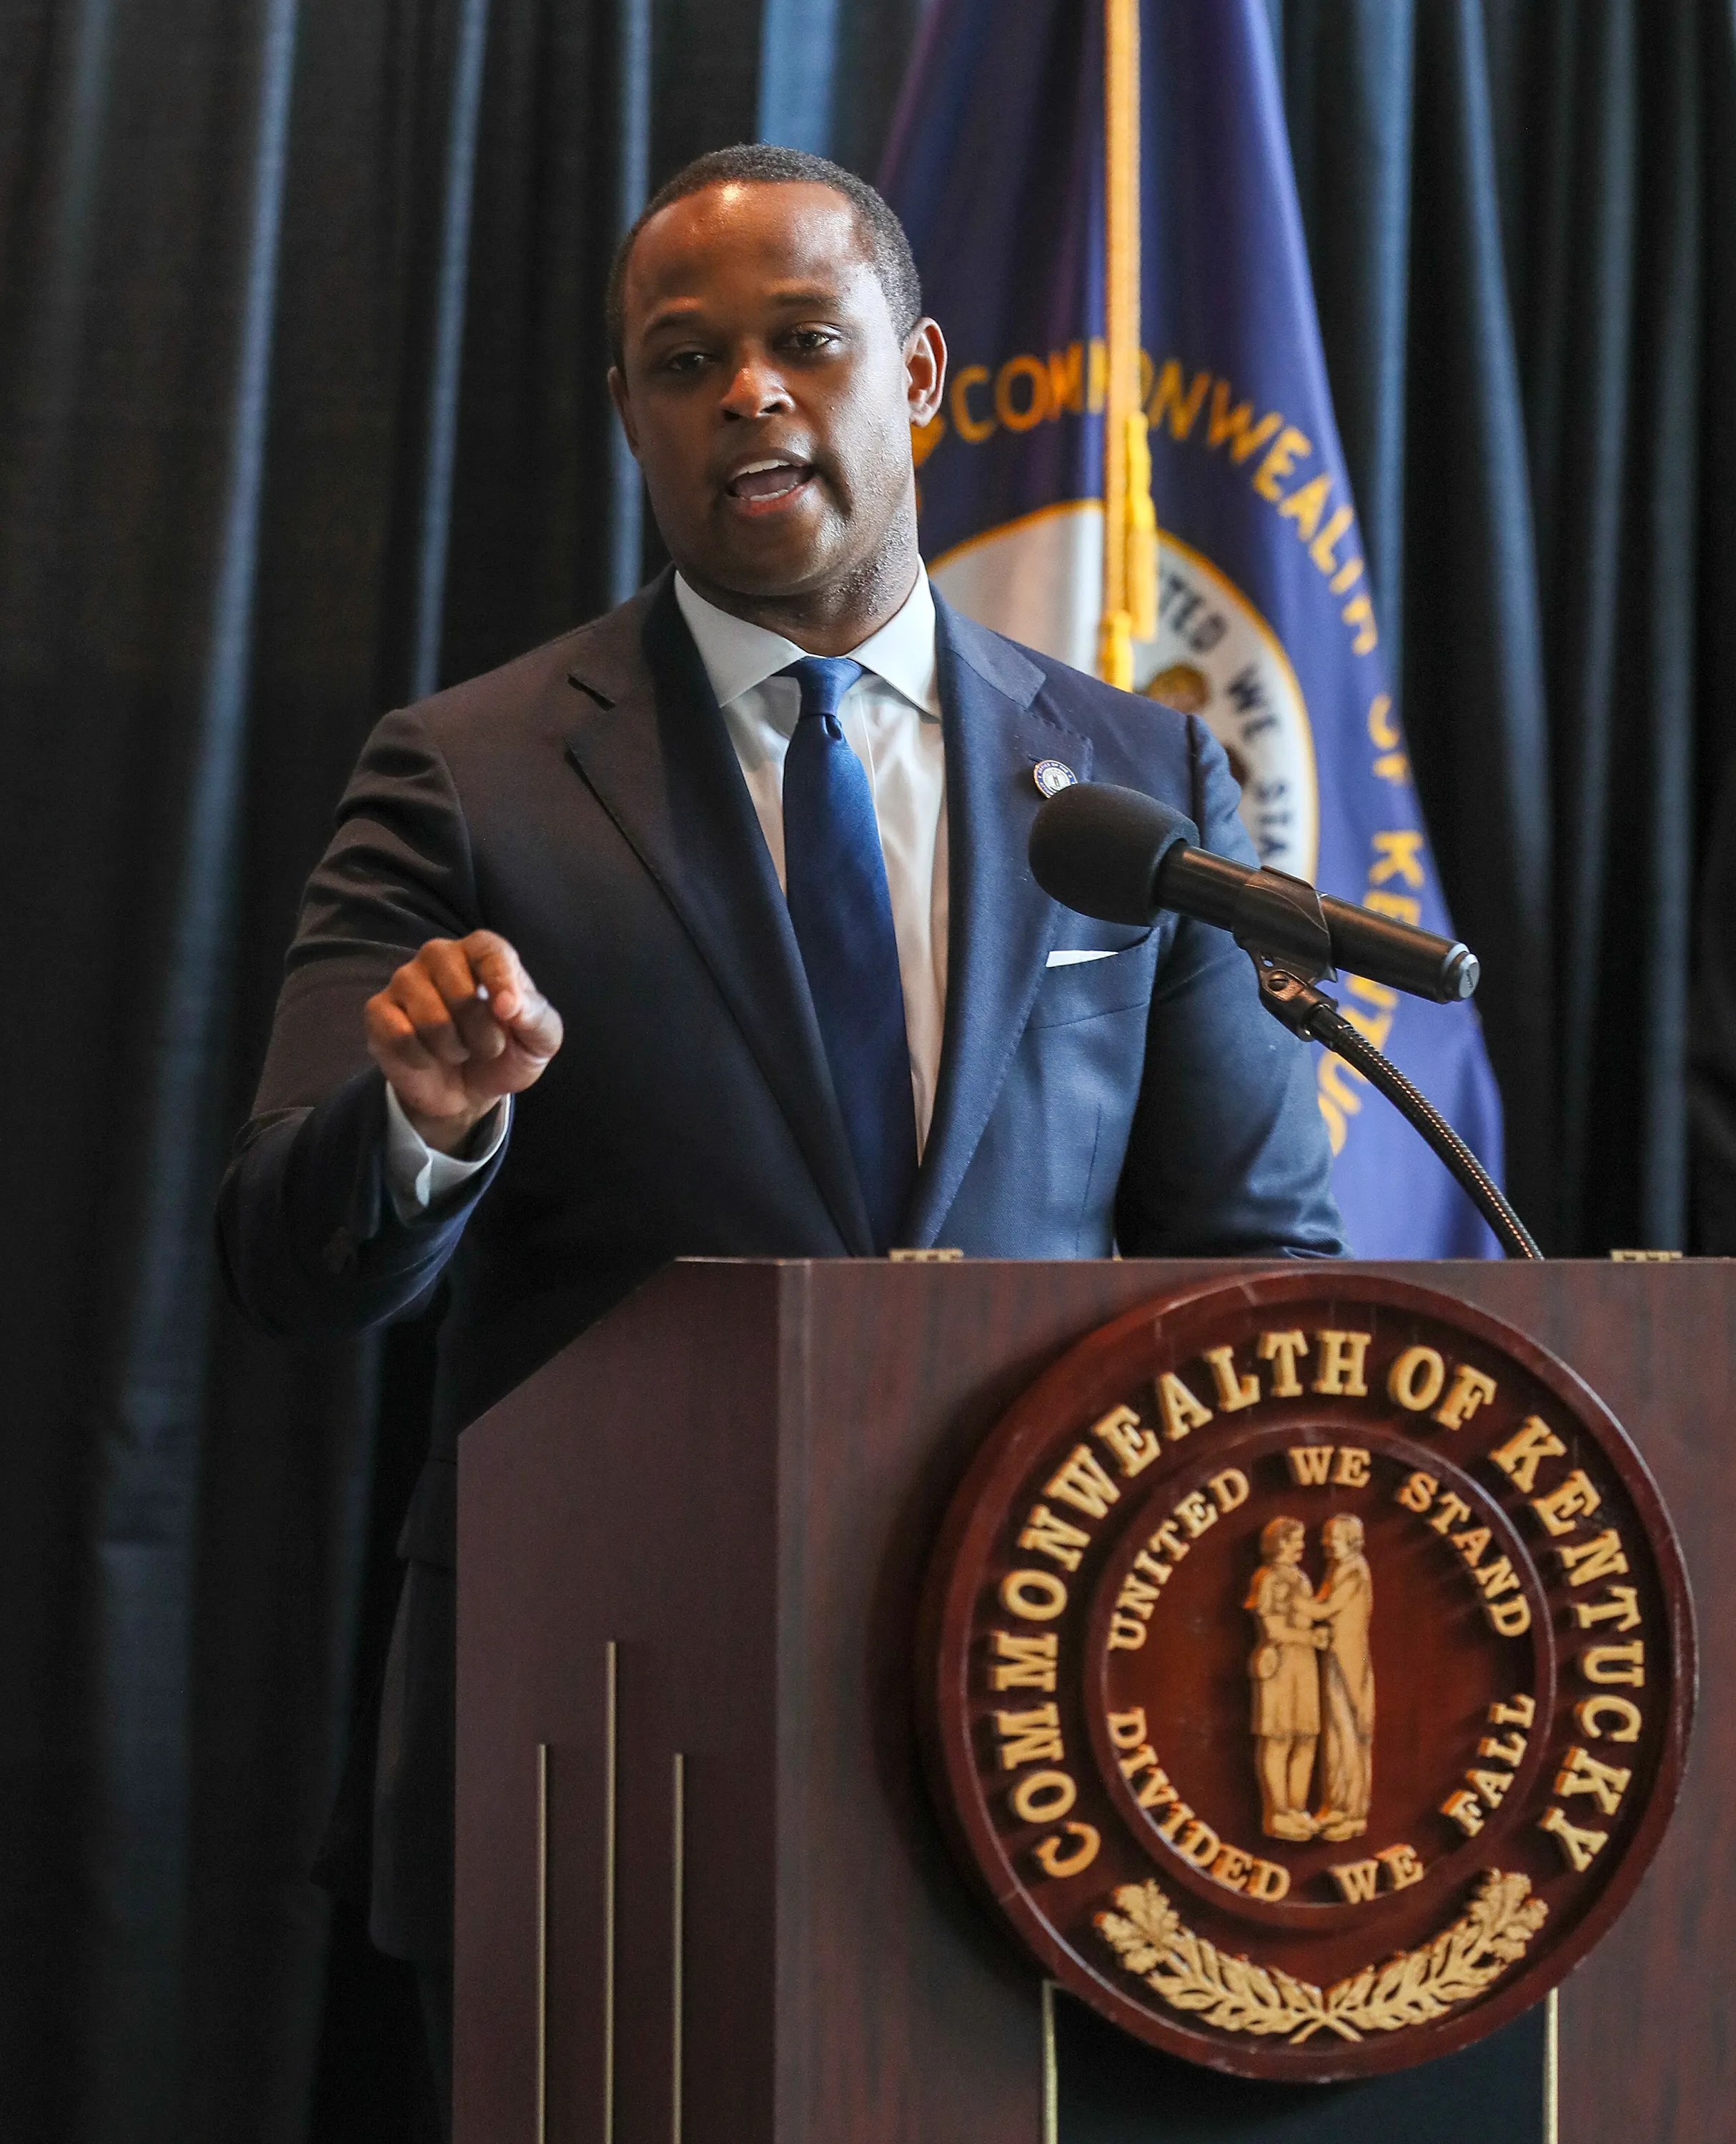 Kentucky Attorney General Daniel Cameron says police were justified in their use of force in the Breonna Taylor shooting.